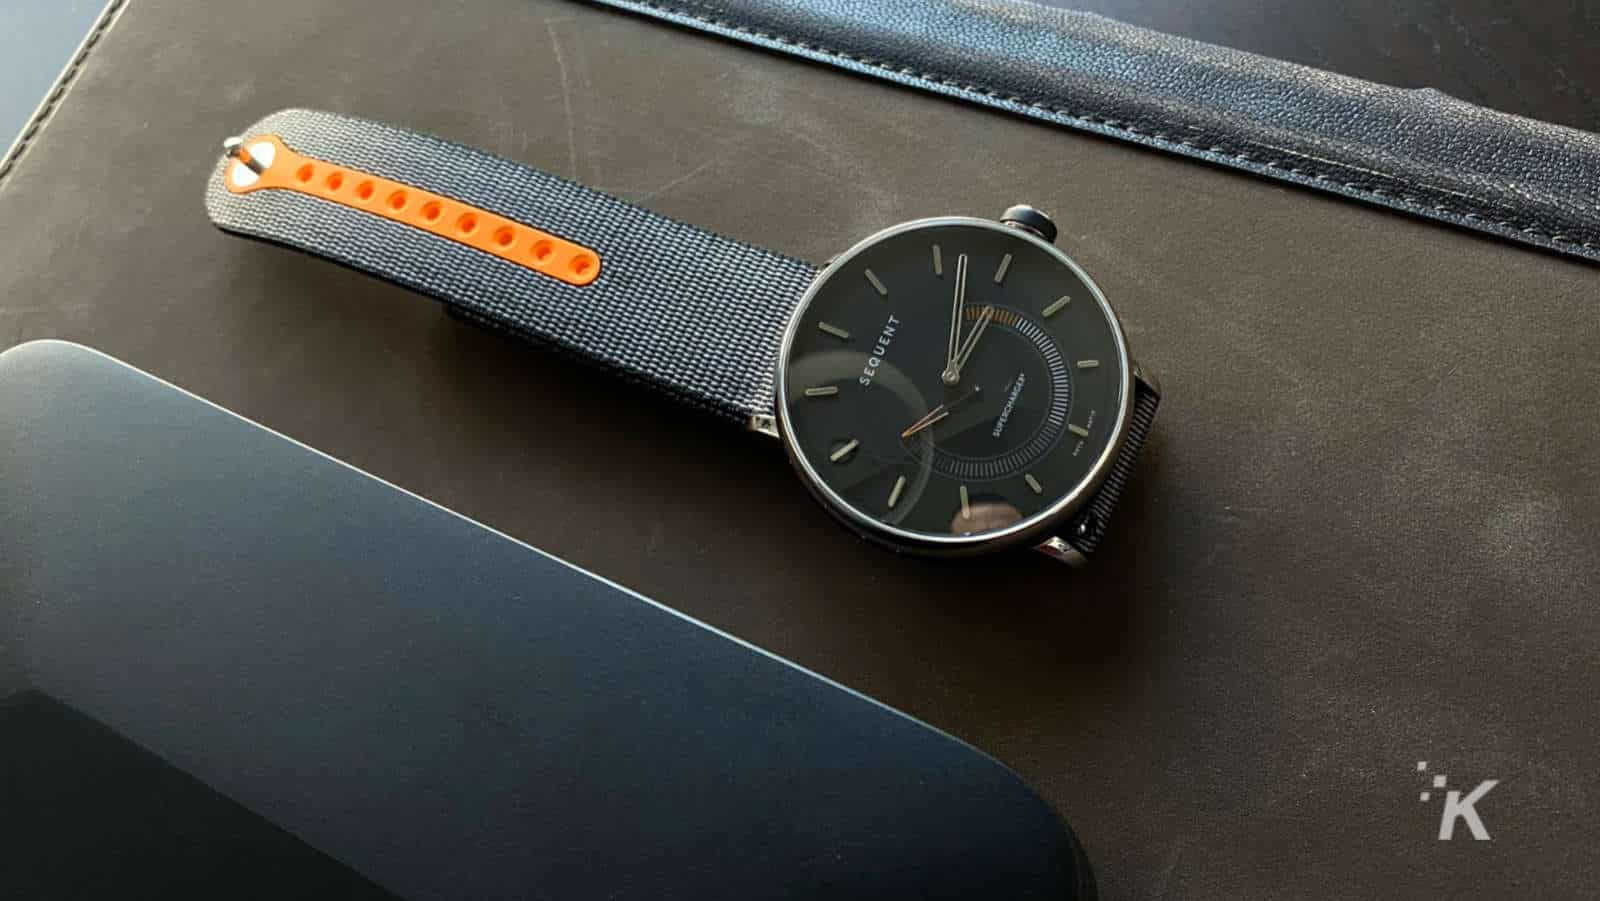 sequent supercharger 2.1 smartwatch